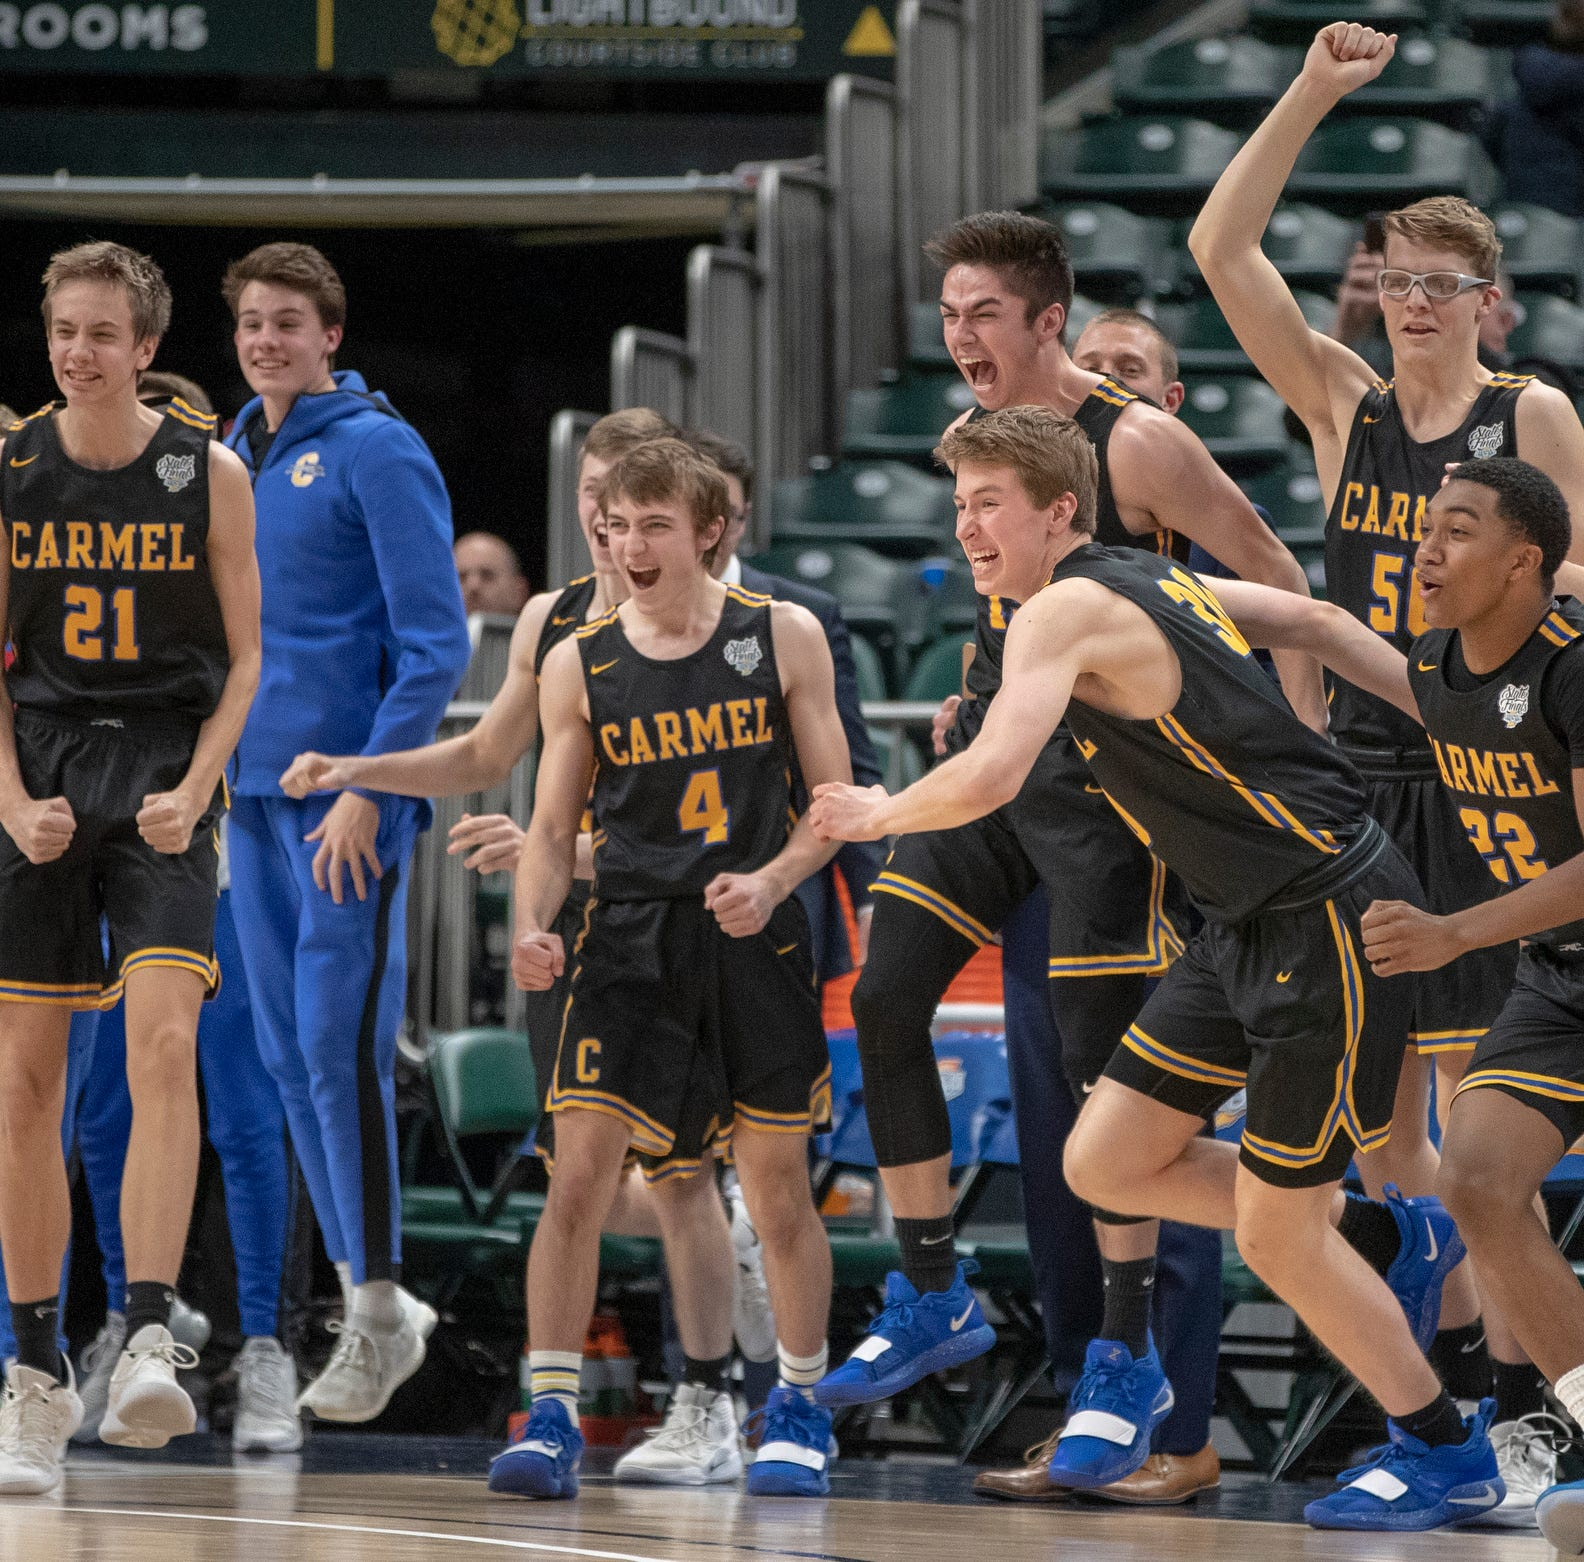 Senior-laden Carmel completes unfinished business, gets 'fairy-tale ending' with state title